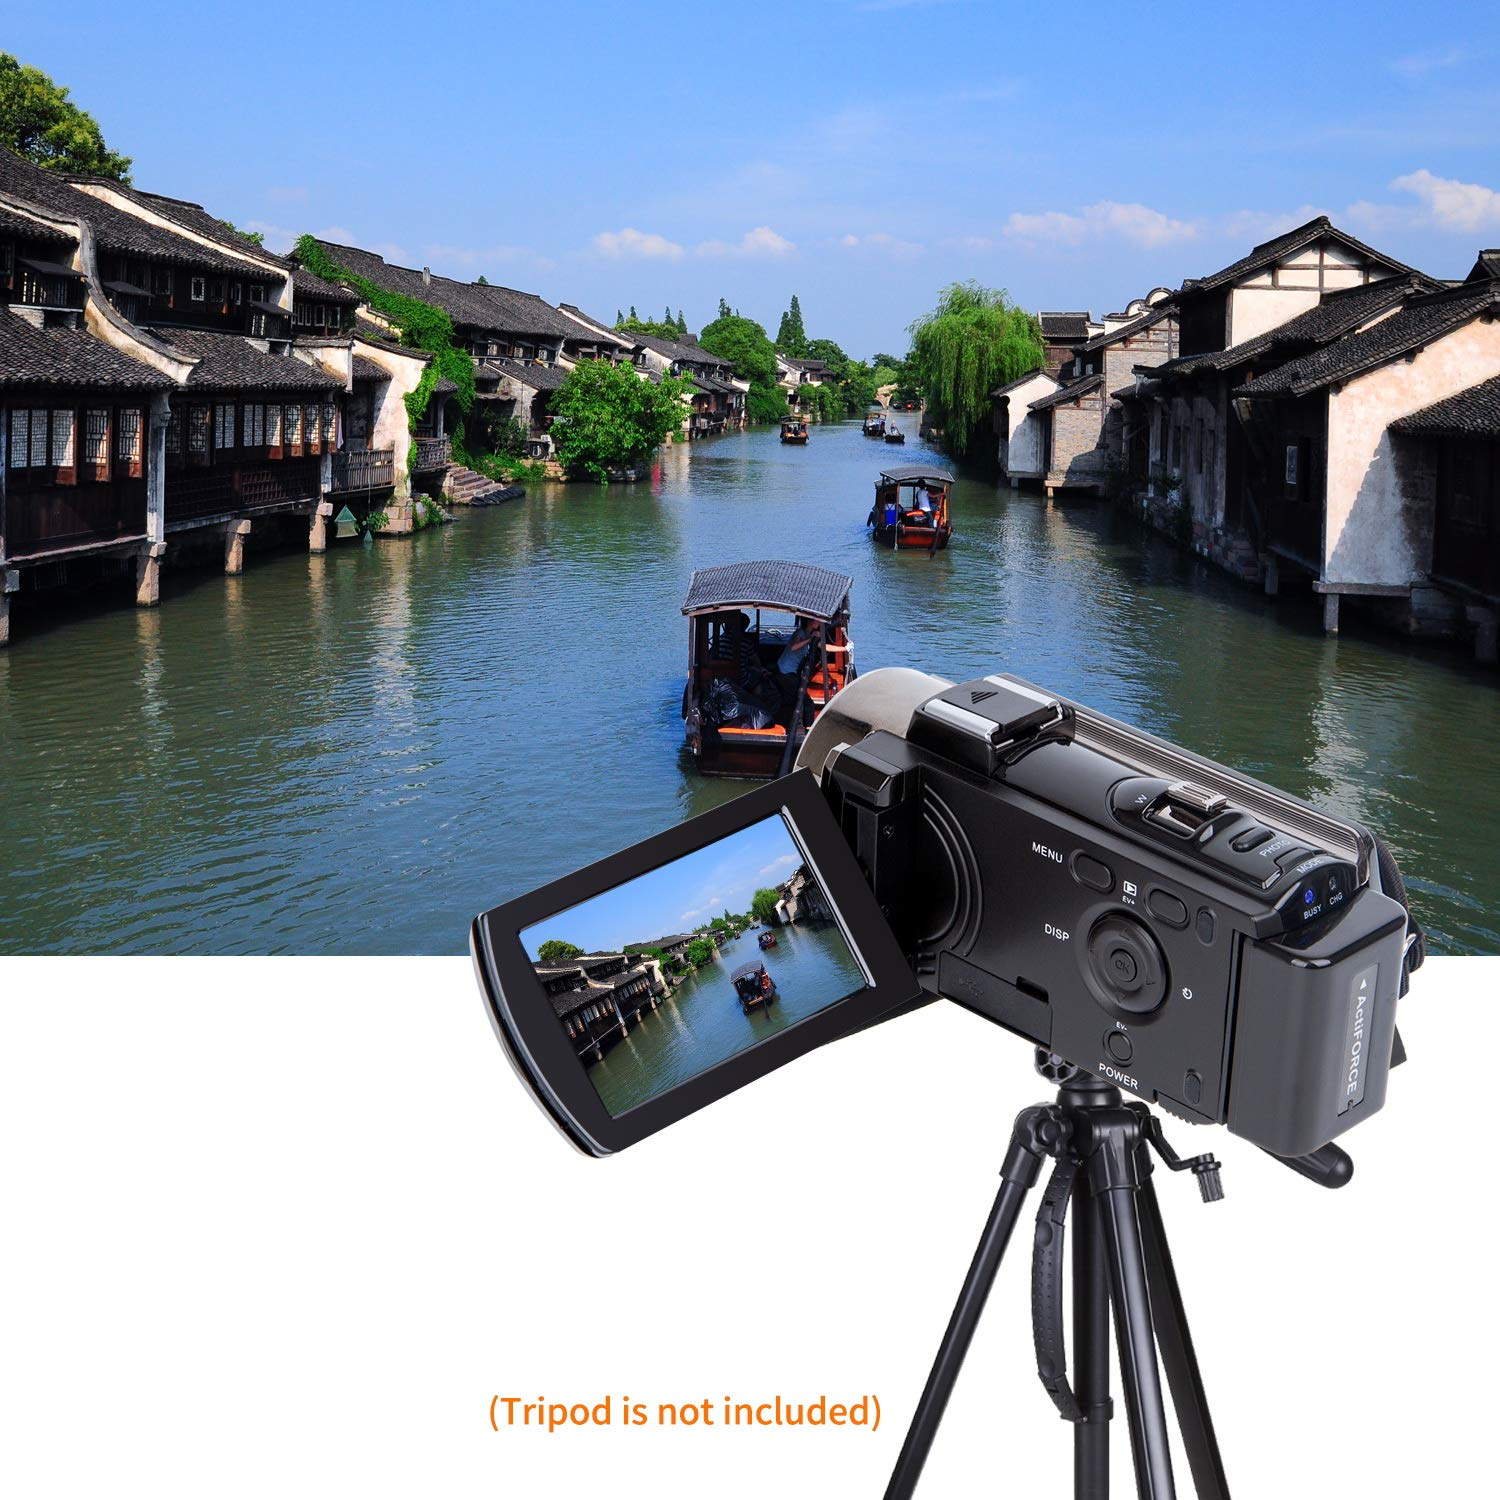 Video Camera Camcorder Digital YouTube Vlogging Camera Recorder kicteck Full HD 1080P 15FPS 24MP 3.0 Inch 270 Degree Rotation LCD 16X Digital Zoom Camcorder with 2 Batteries 604s